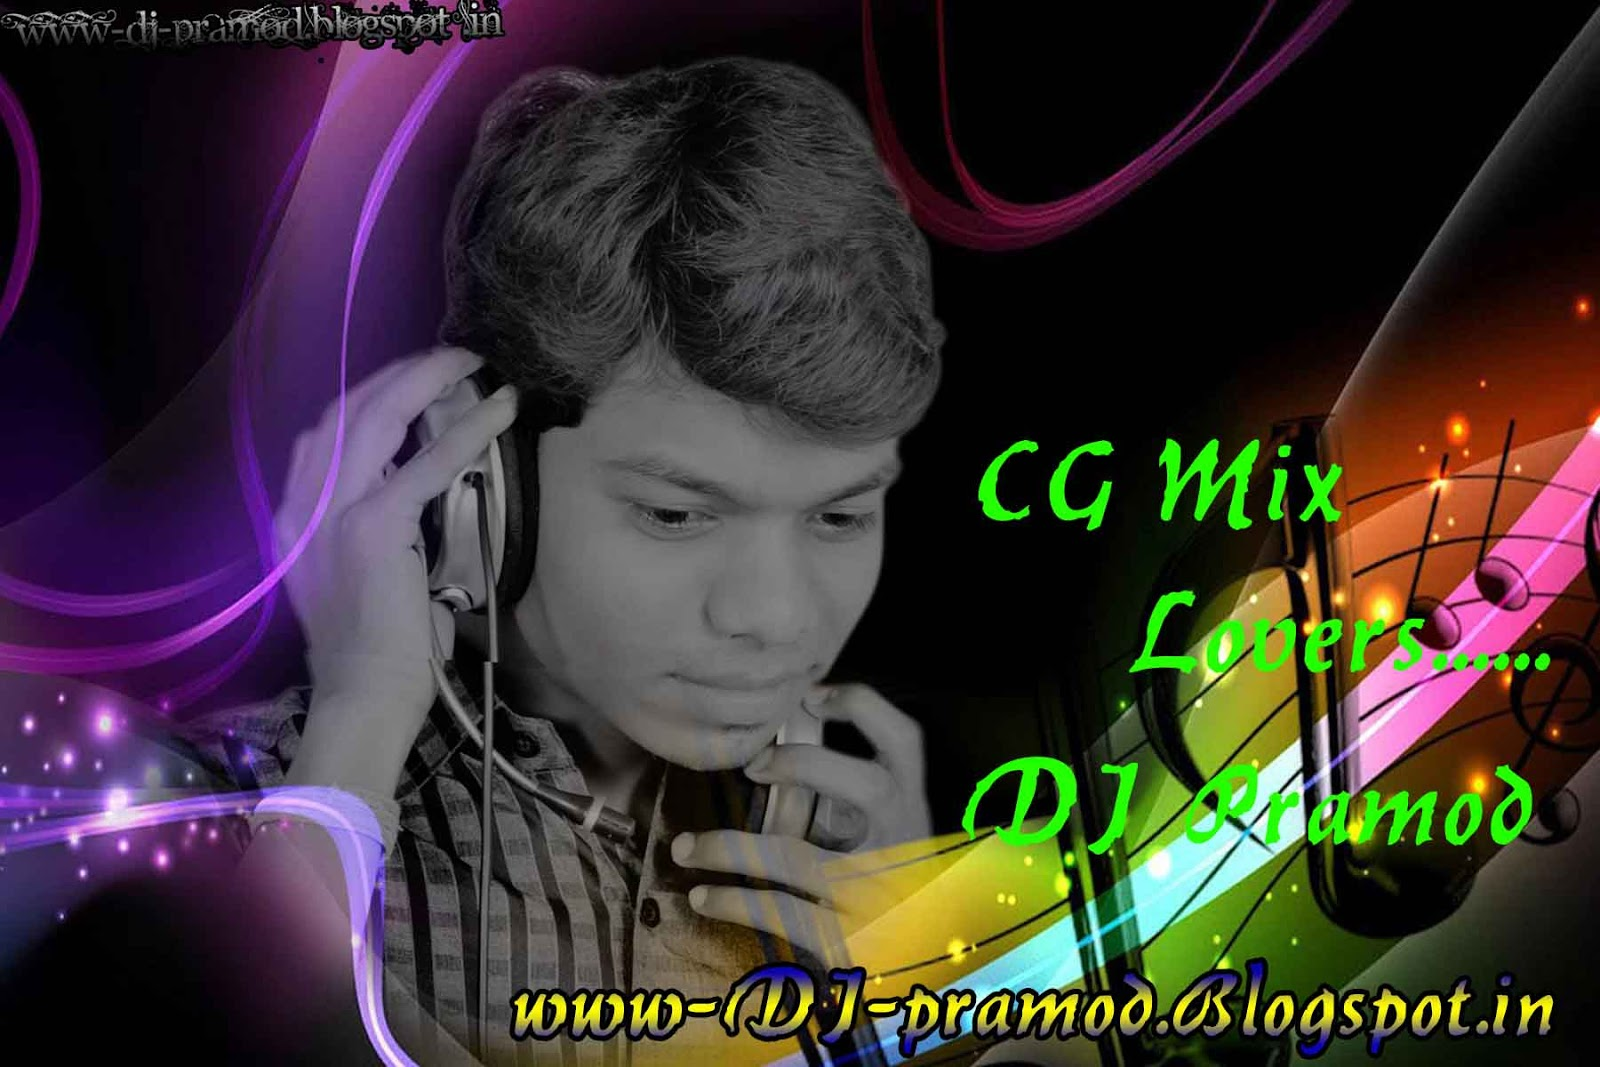 Cg dj pramod most wanted song for 1234 get on the dance floor mp3 download chennai express